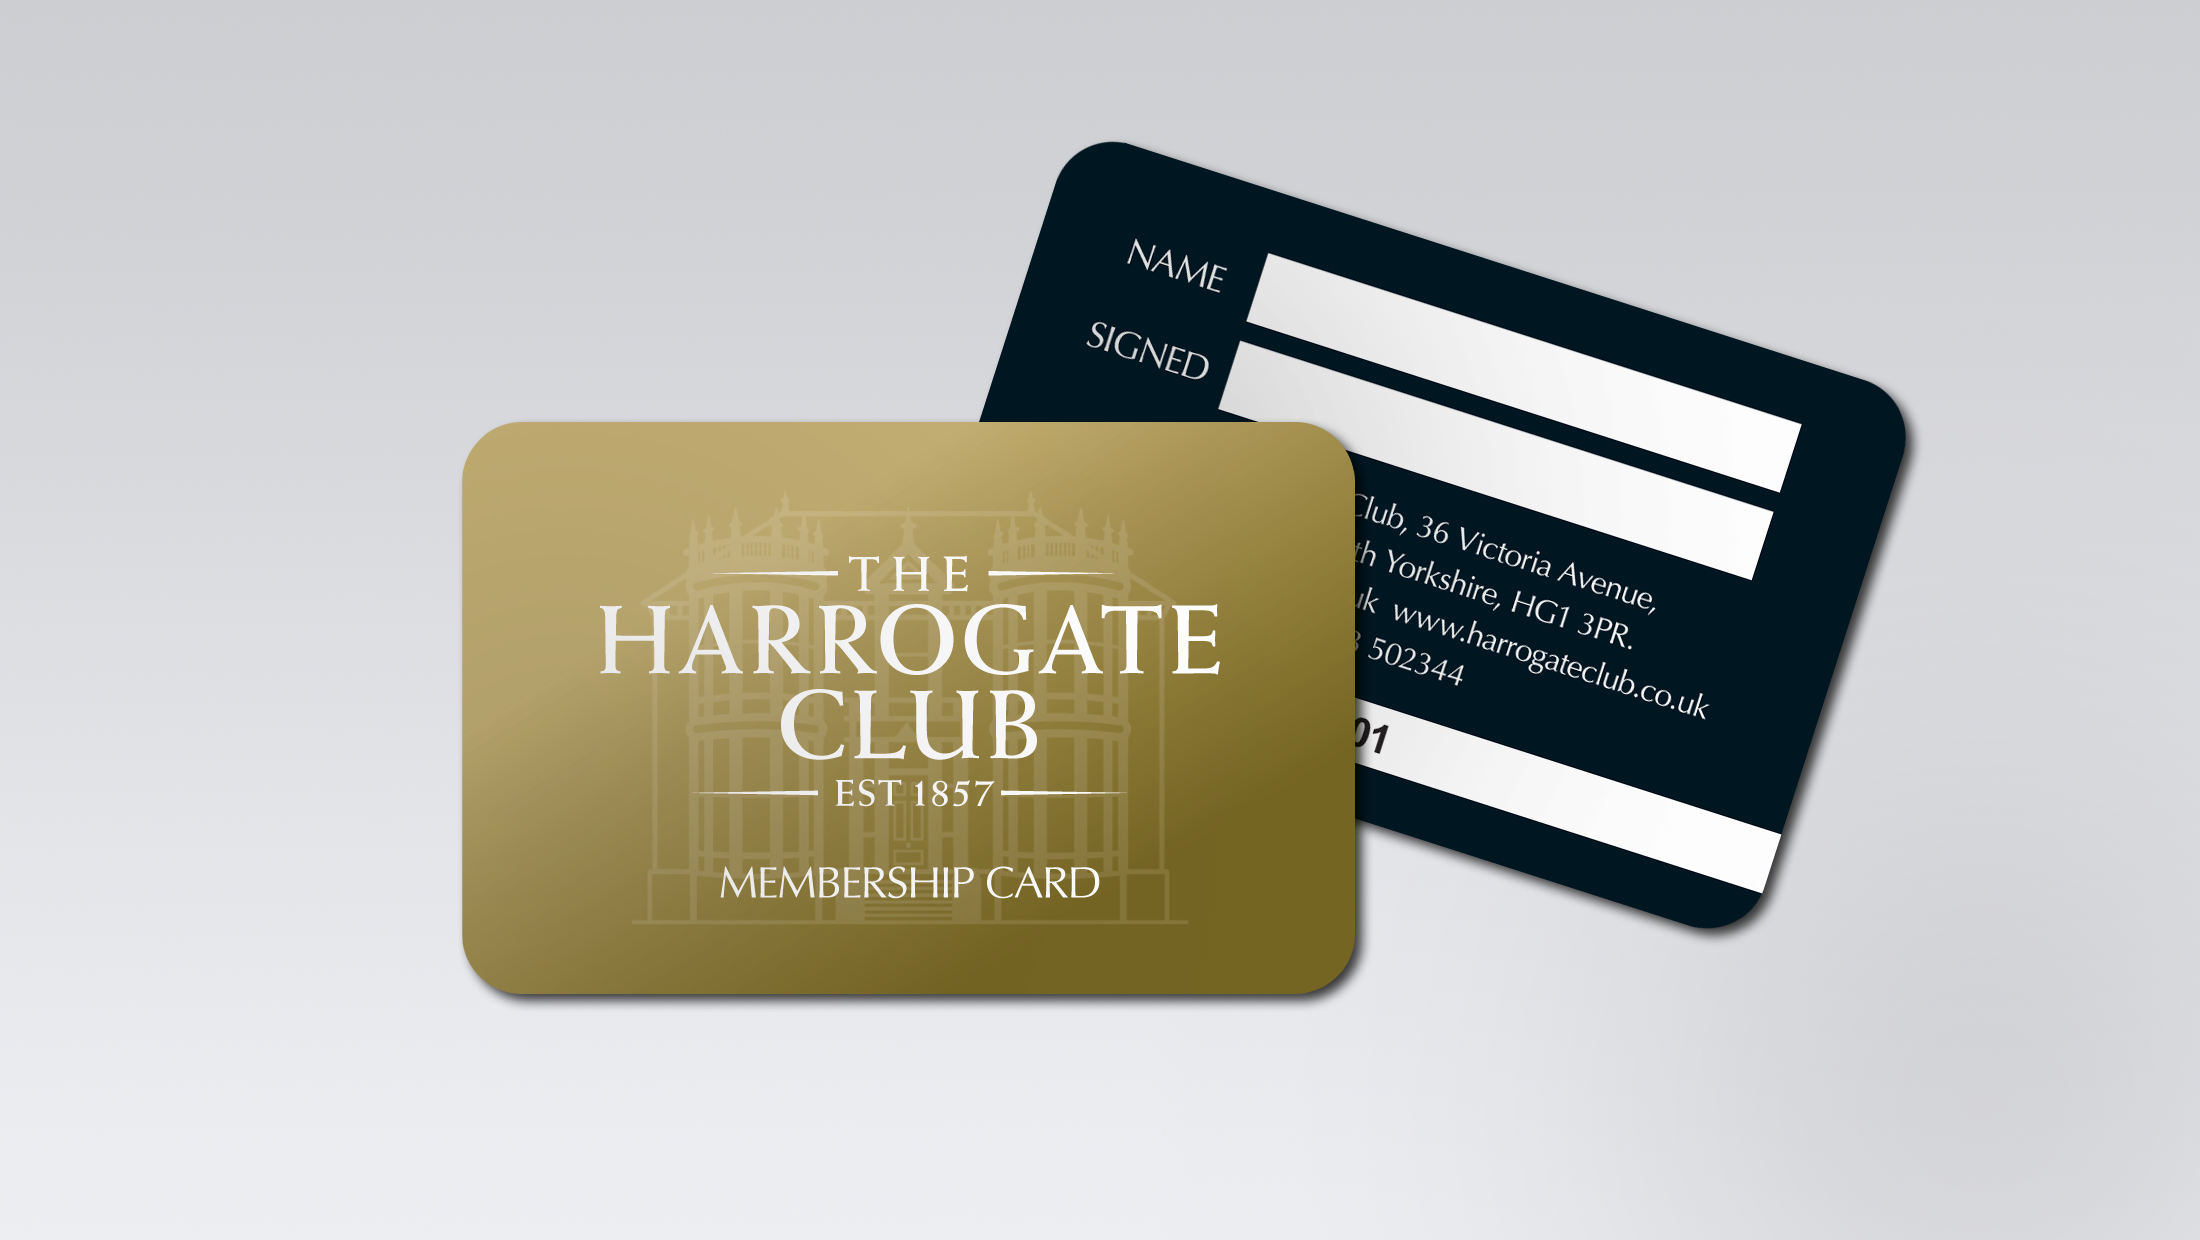 Exceptional Membership Card Design For The Harrogate Club For Membership Card Design